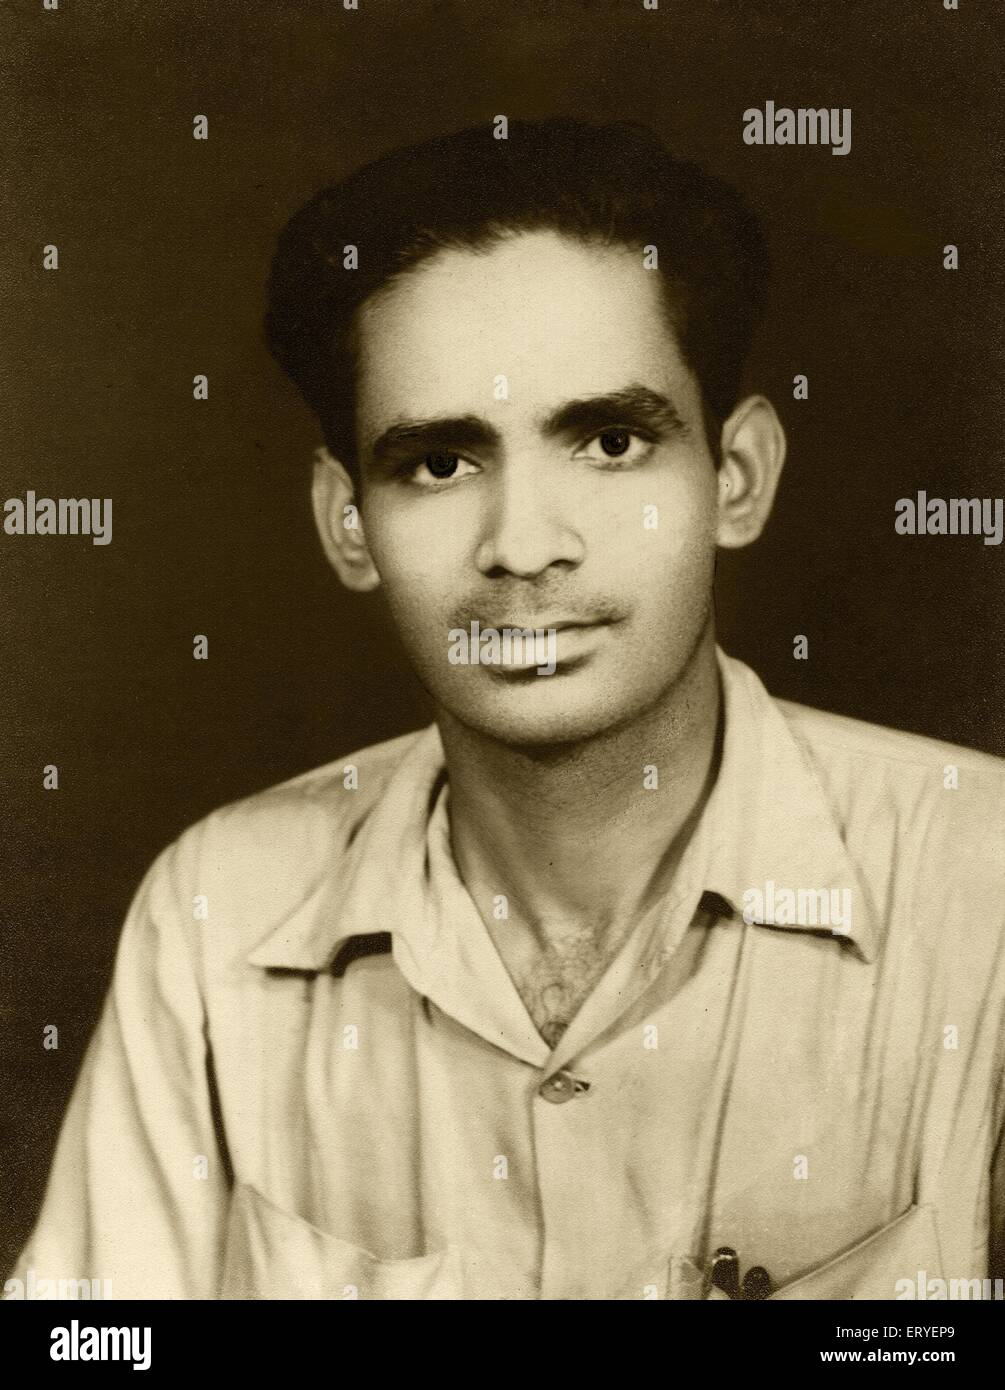 Old studio photograph of Arvind Dave MR#767 1946 - Stock Image